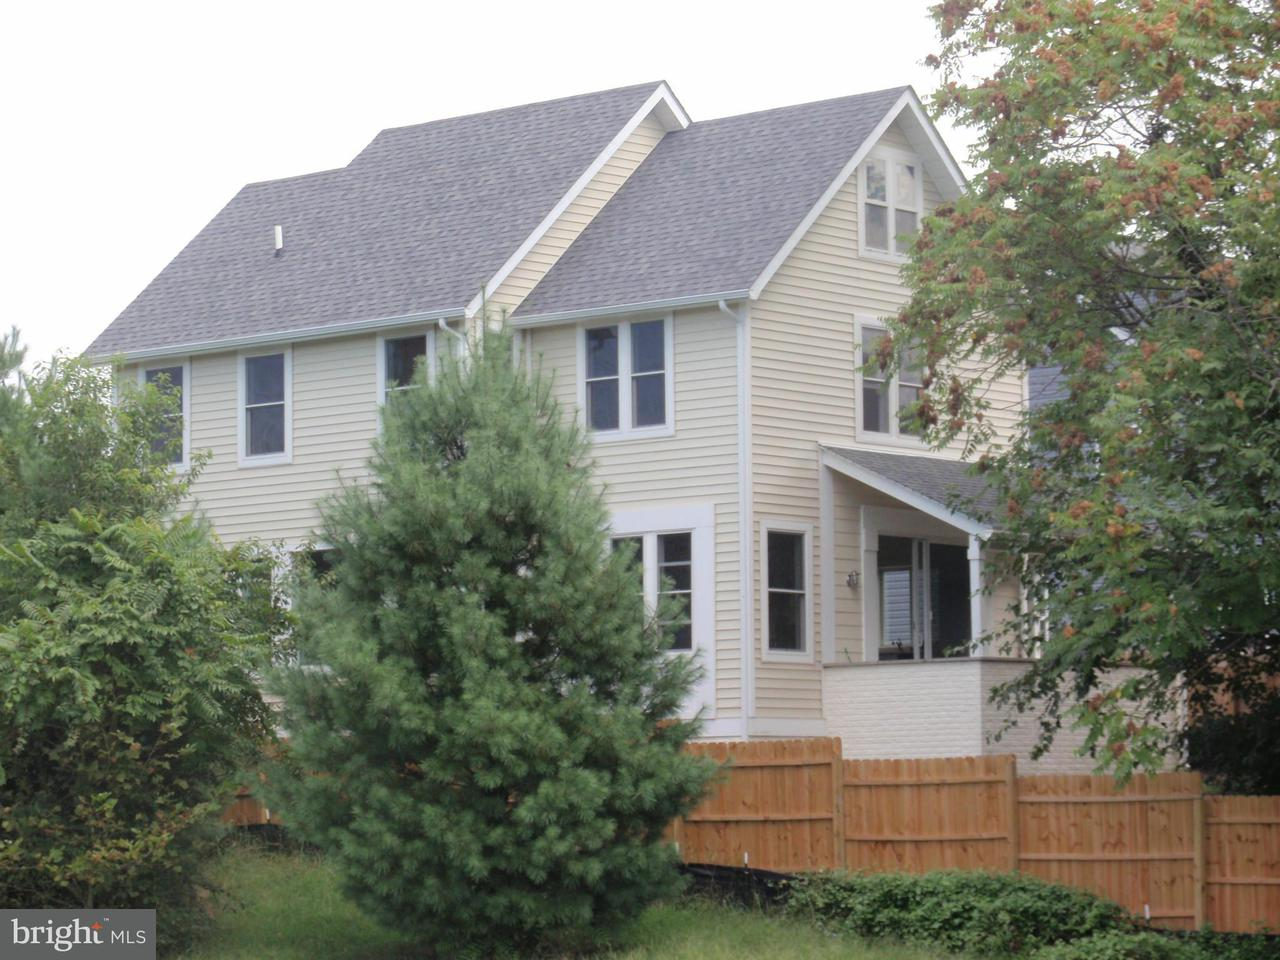 Single Family Home for Sale at 31 Rosemary Street 31 Rosemary Street Annapolis, Maryland 21401 United States